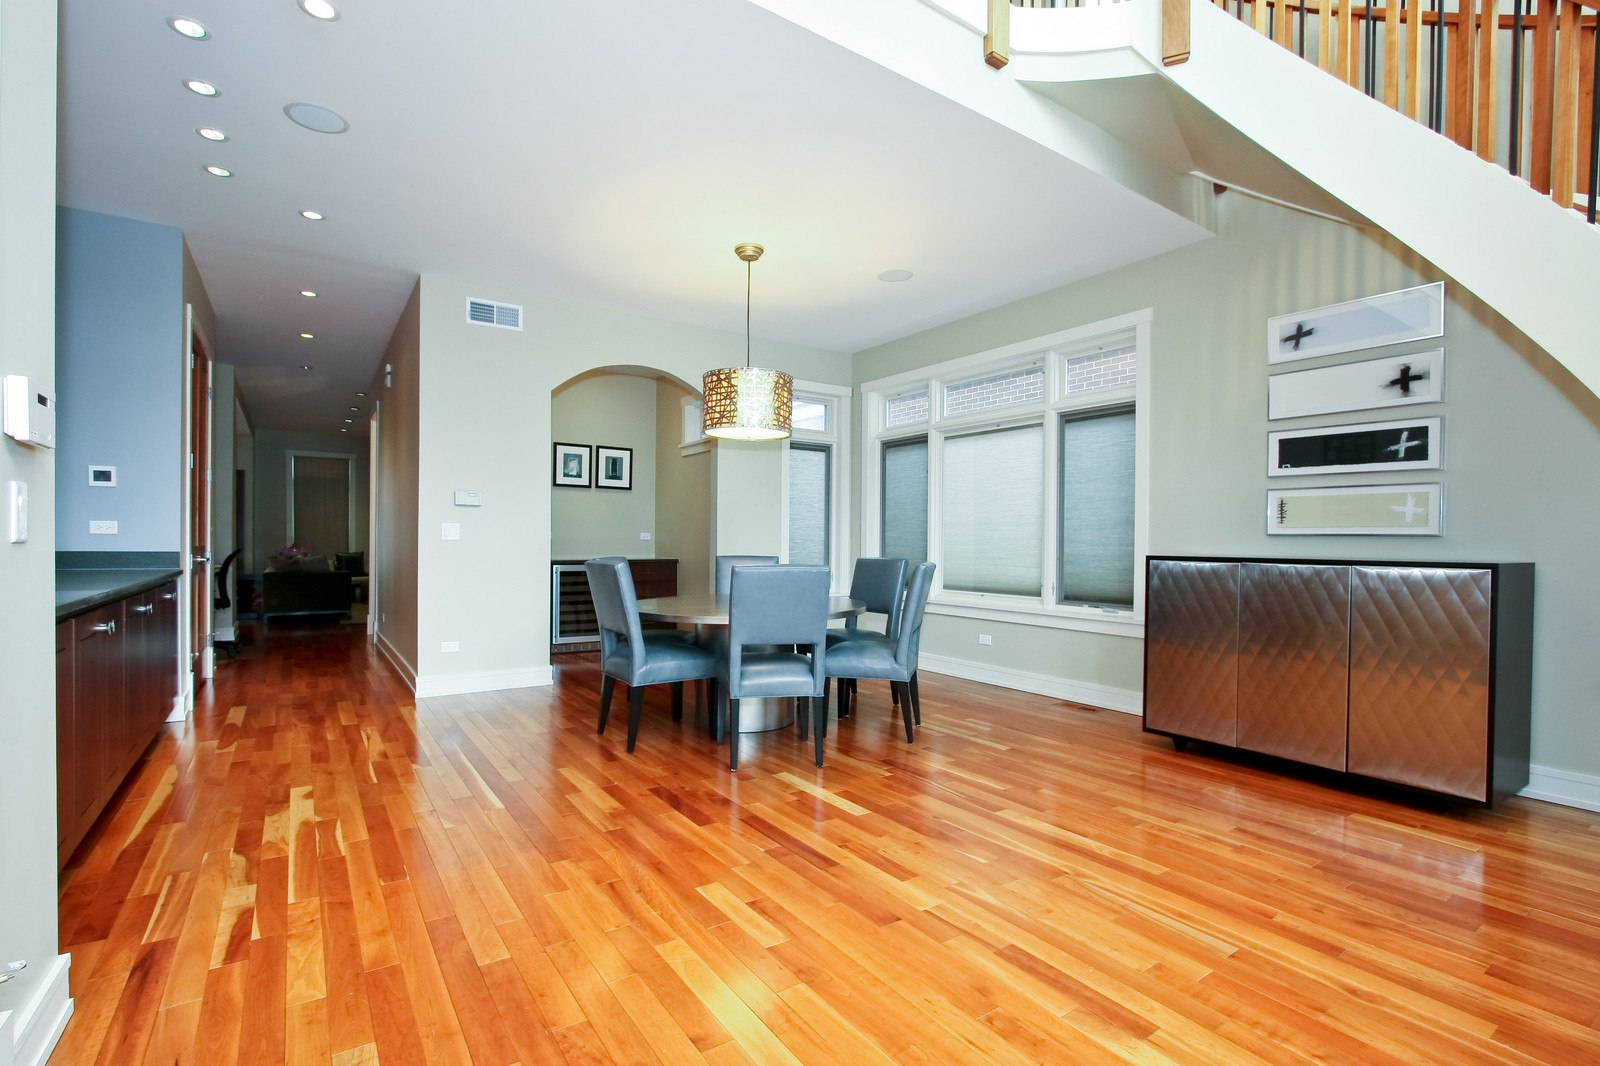 Real Estate Photography - 444 W. 38th Street, Chicago, IL, 60609 - Formal Dining / Great Room